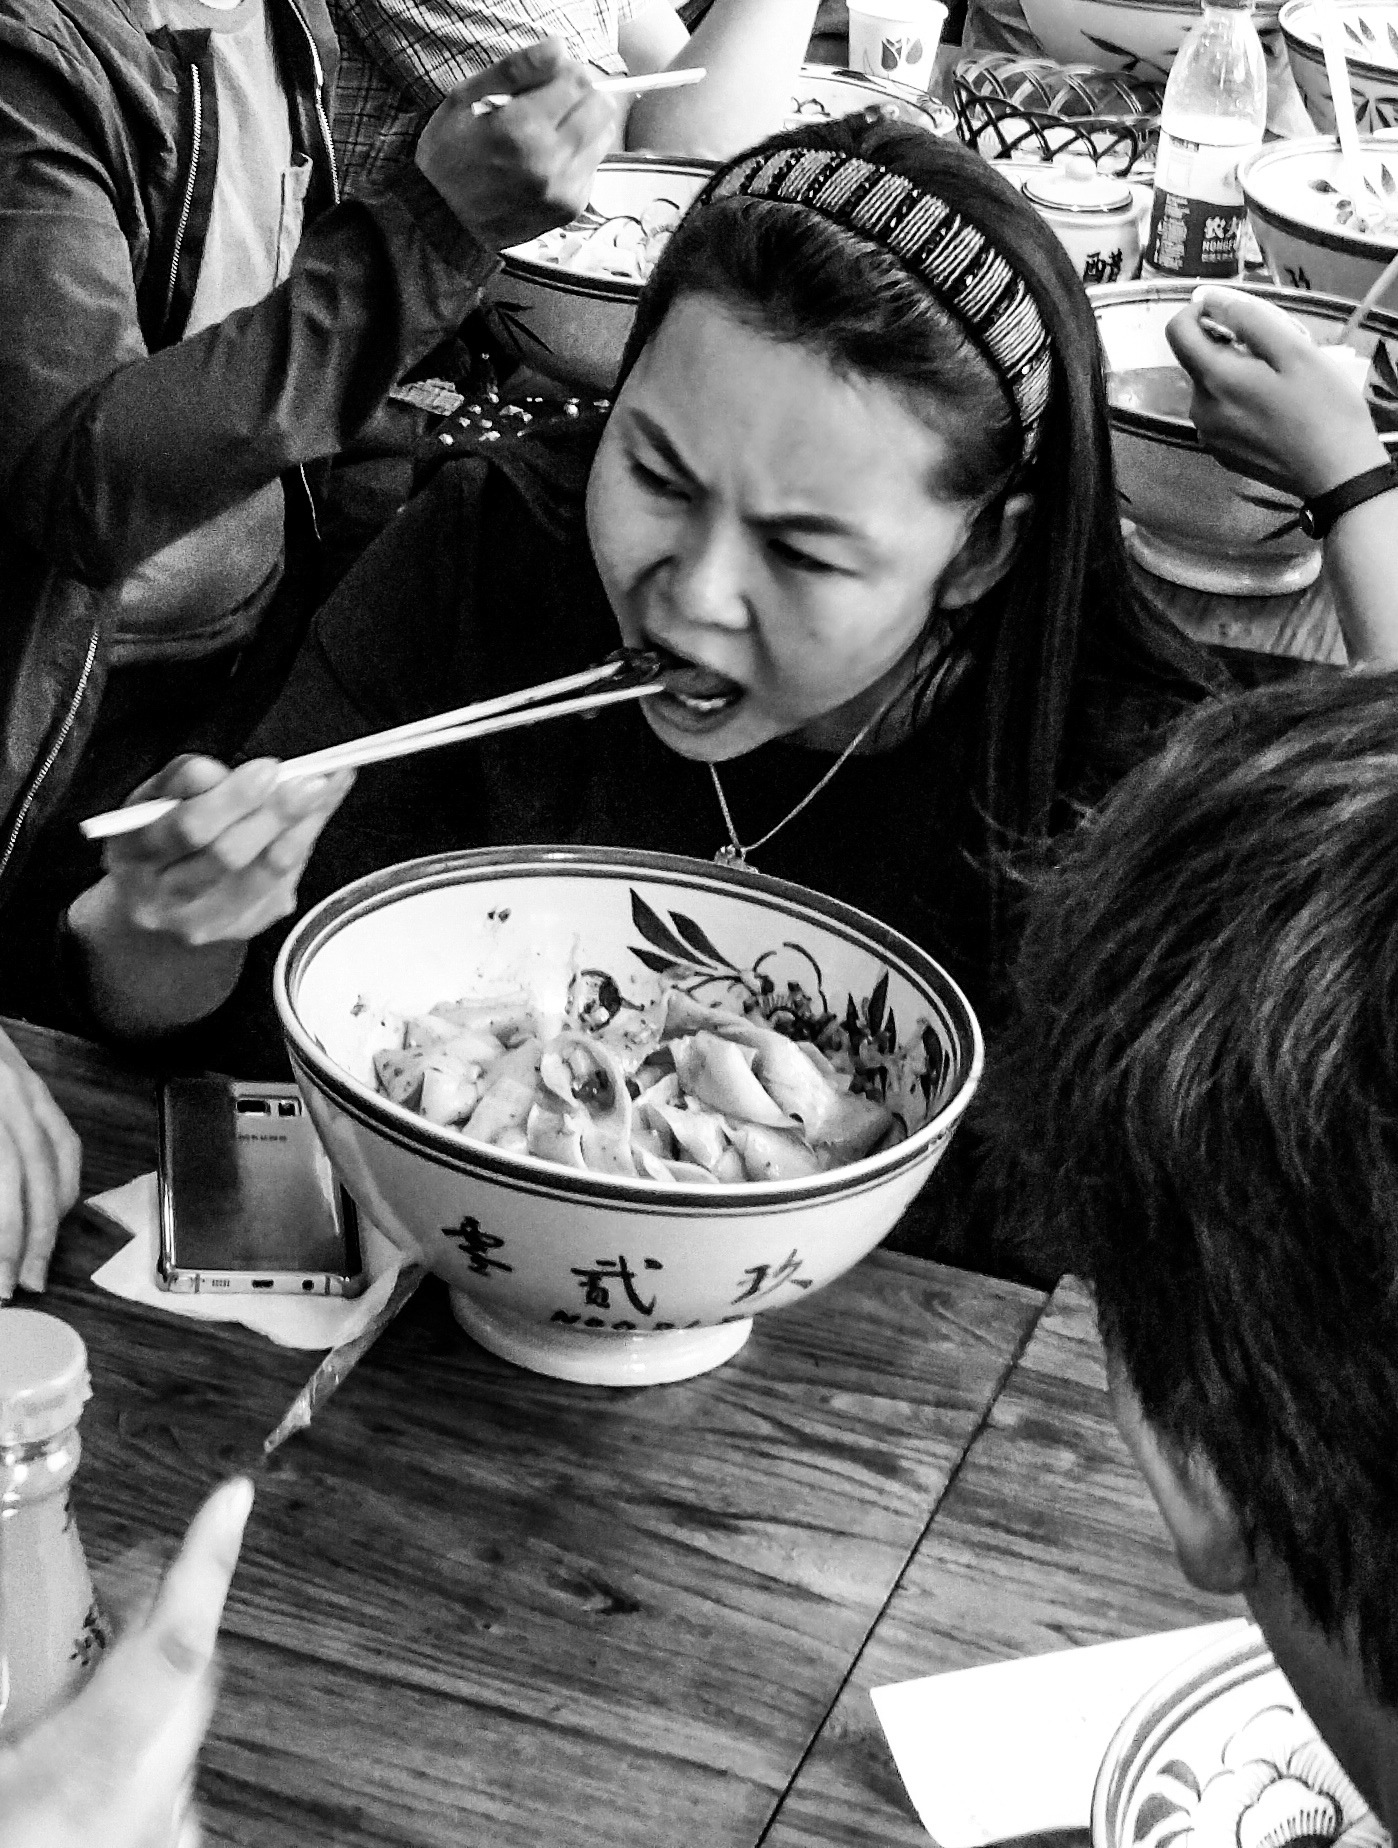 Eating in Beijing  by Christer Lindblad